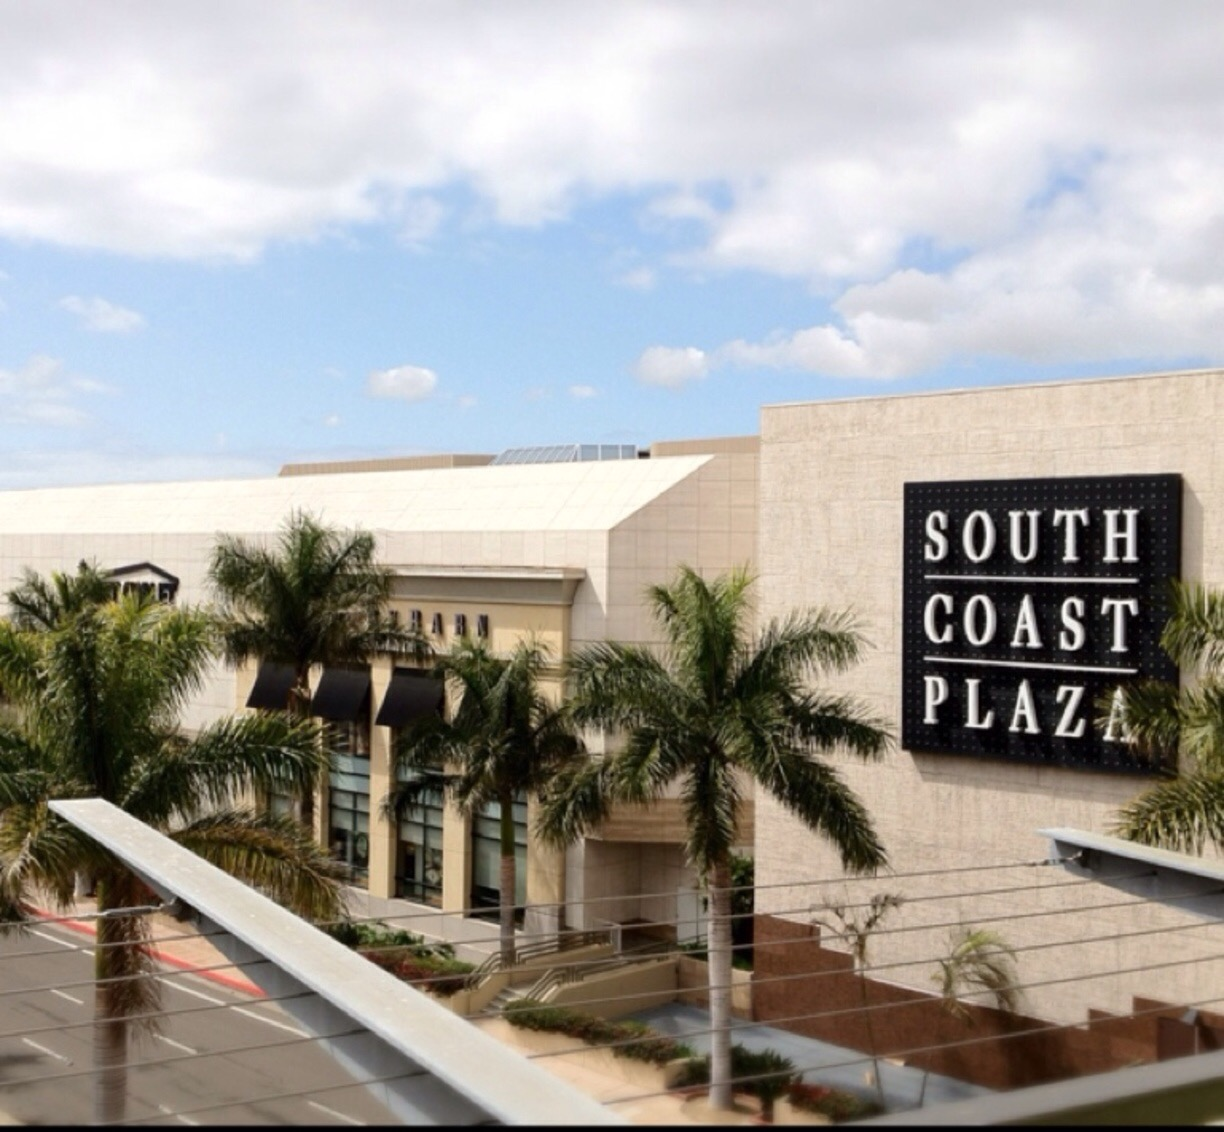 South Coast Plaza is the South Bay / Orange County's indoor Rodeo Drive, similar to Beverly Hills, without the hassles of parking, traffic and the outdoor weather. This is an elite mall with all of the high end designer retailers you can imagine and dream of ever adorning their fashion and wares/5(K).